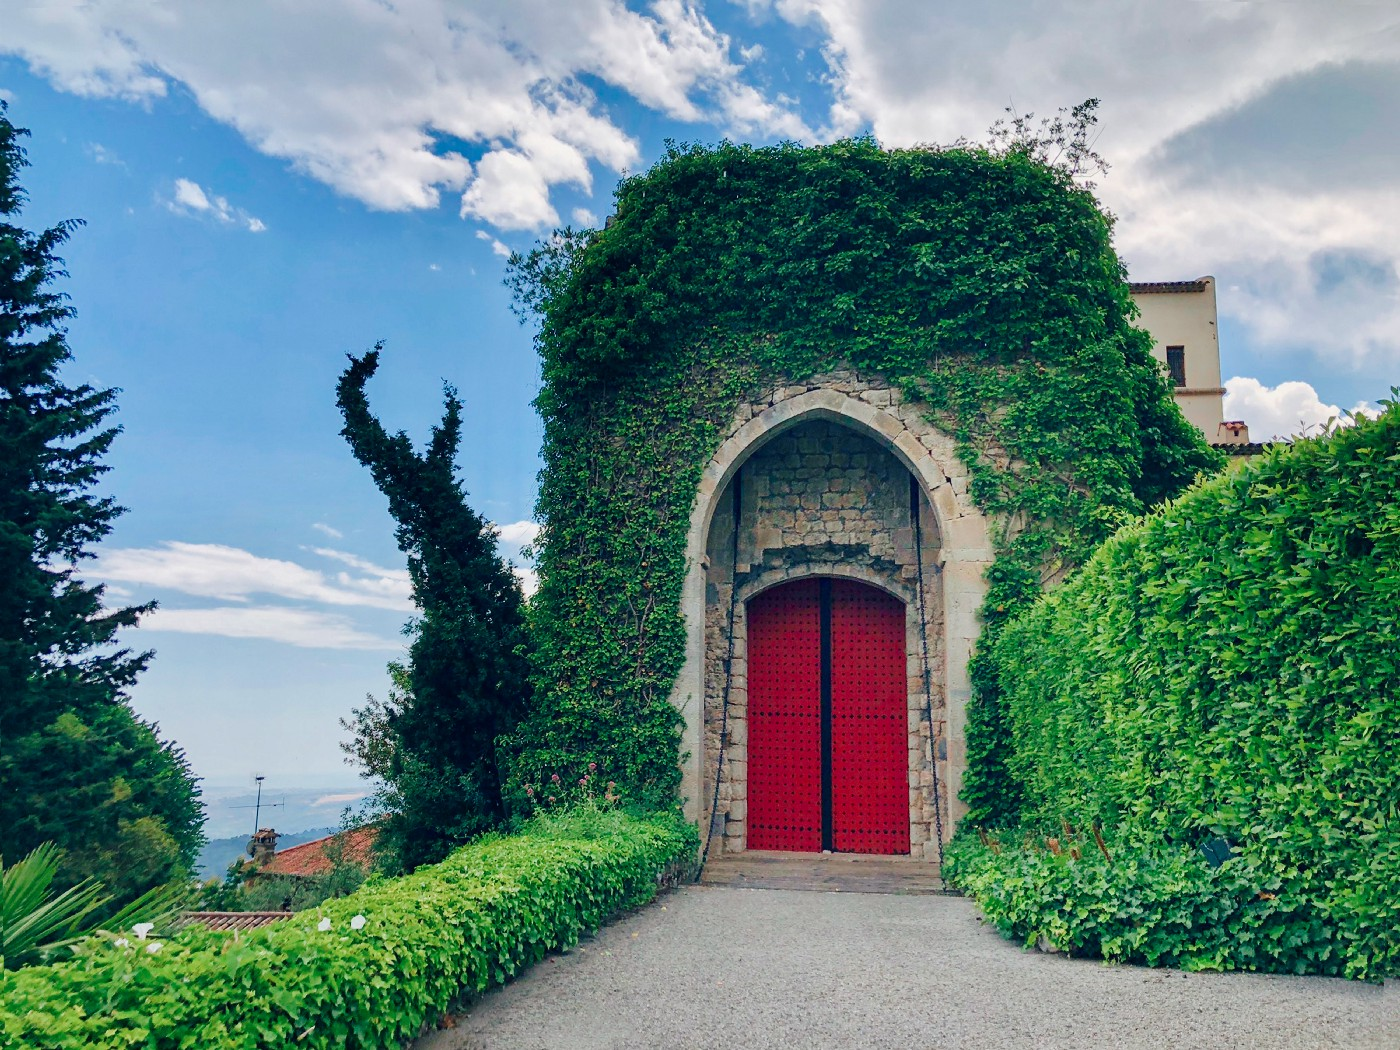 Mansion entrance with a red door